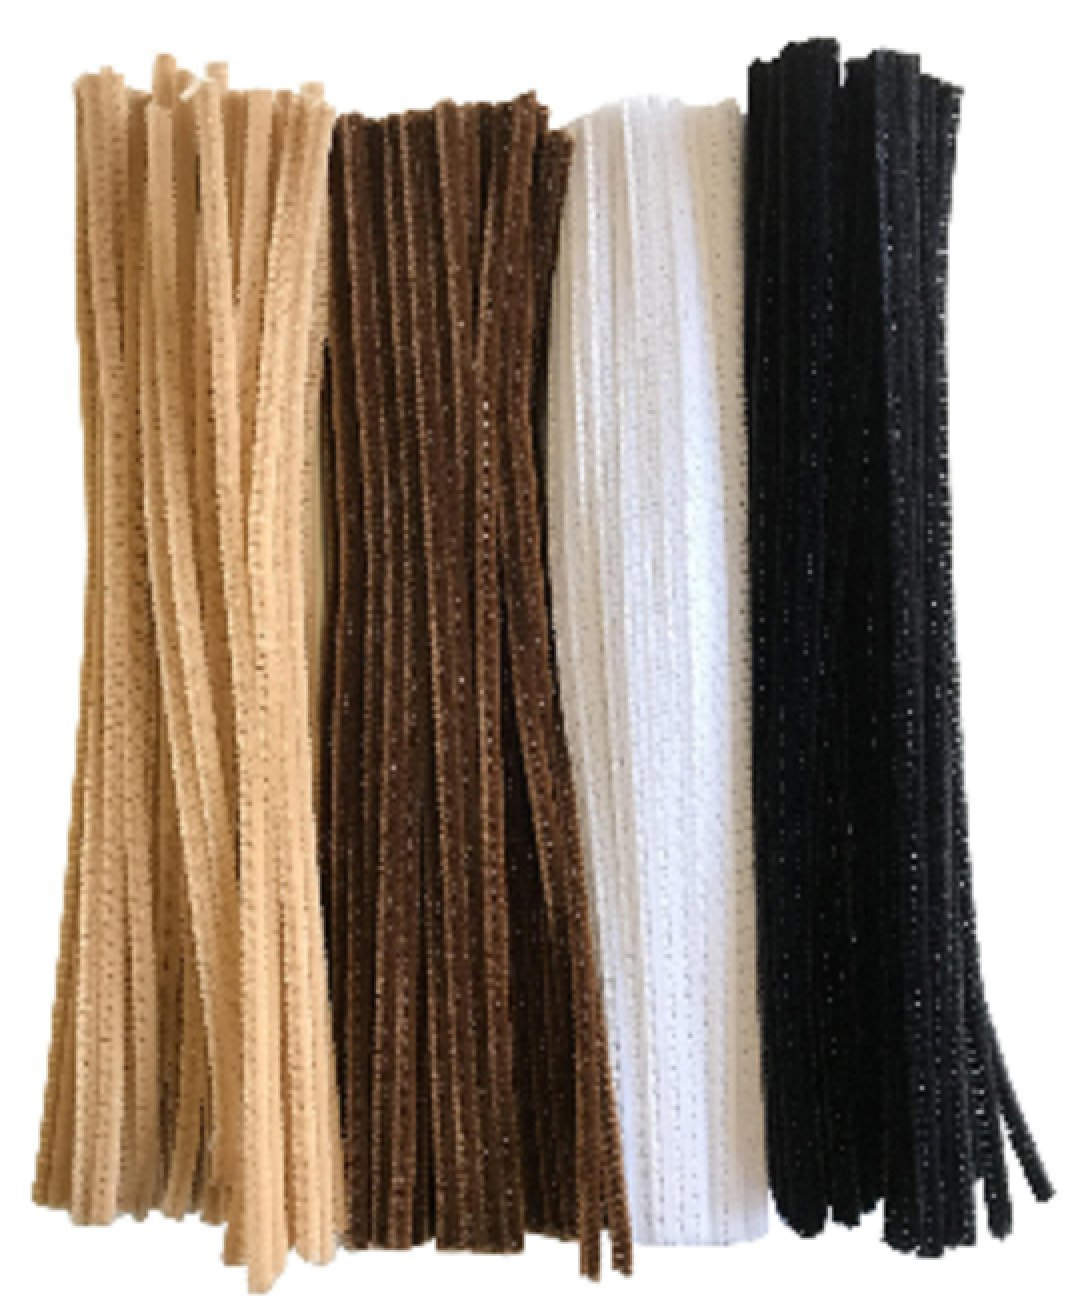 Kids B Crafty 100 Chenille Craft Pipe Cleaners 29cm x 6mm Brown White Black Flesh